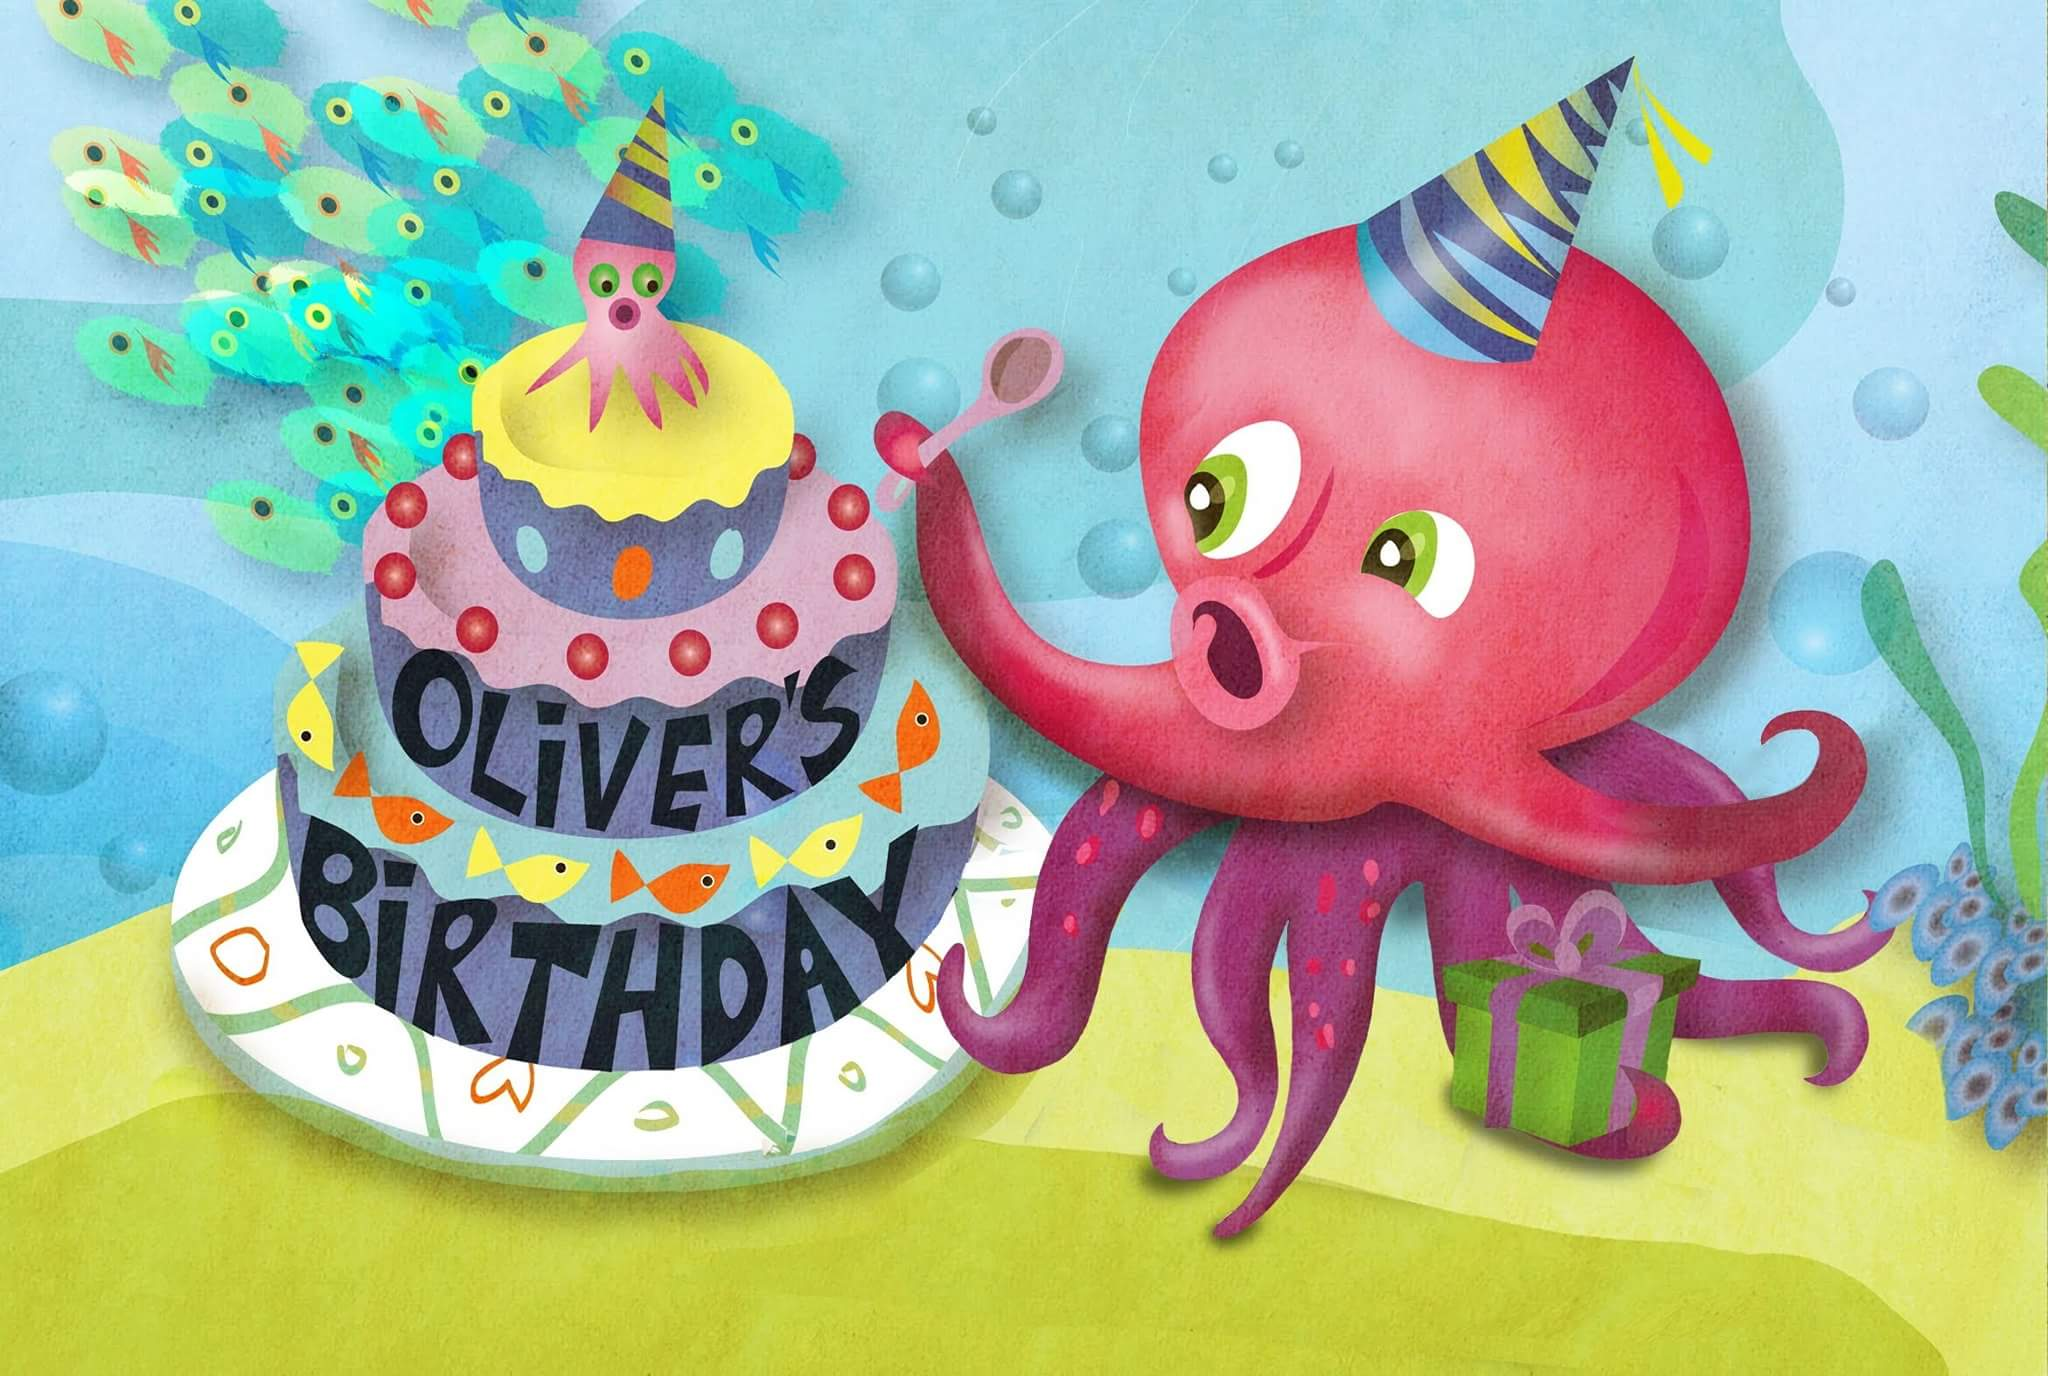 slide 1 Oliver's Birthday, by Bonnie Lady Lee. Let's celebrate Oliver's Birthday! Ollie and friends have fun discovering the names of basic shapes! Board Book. Ages Baby to 3.